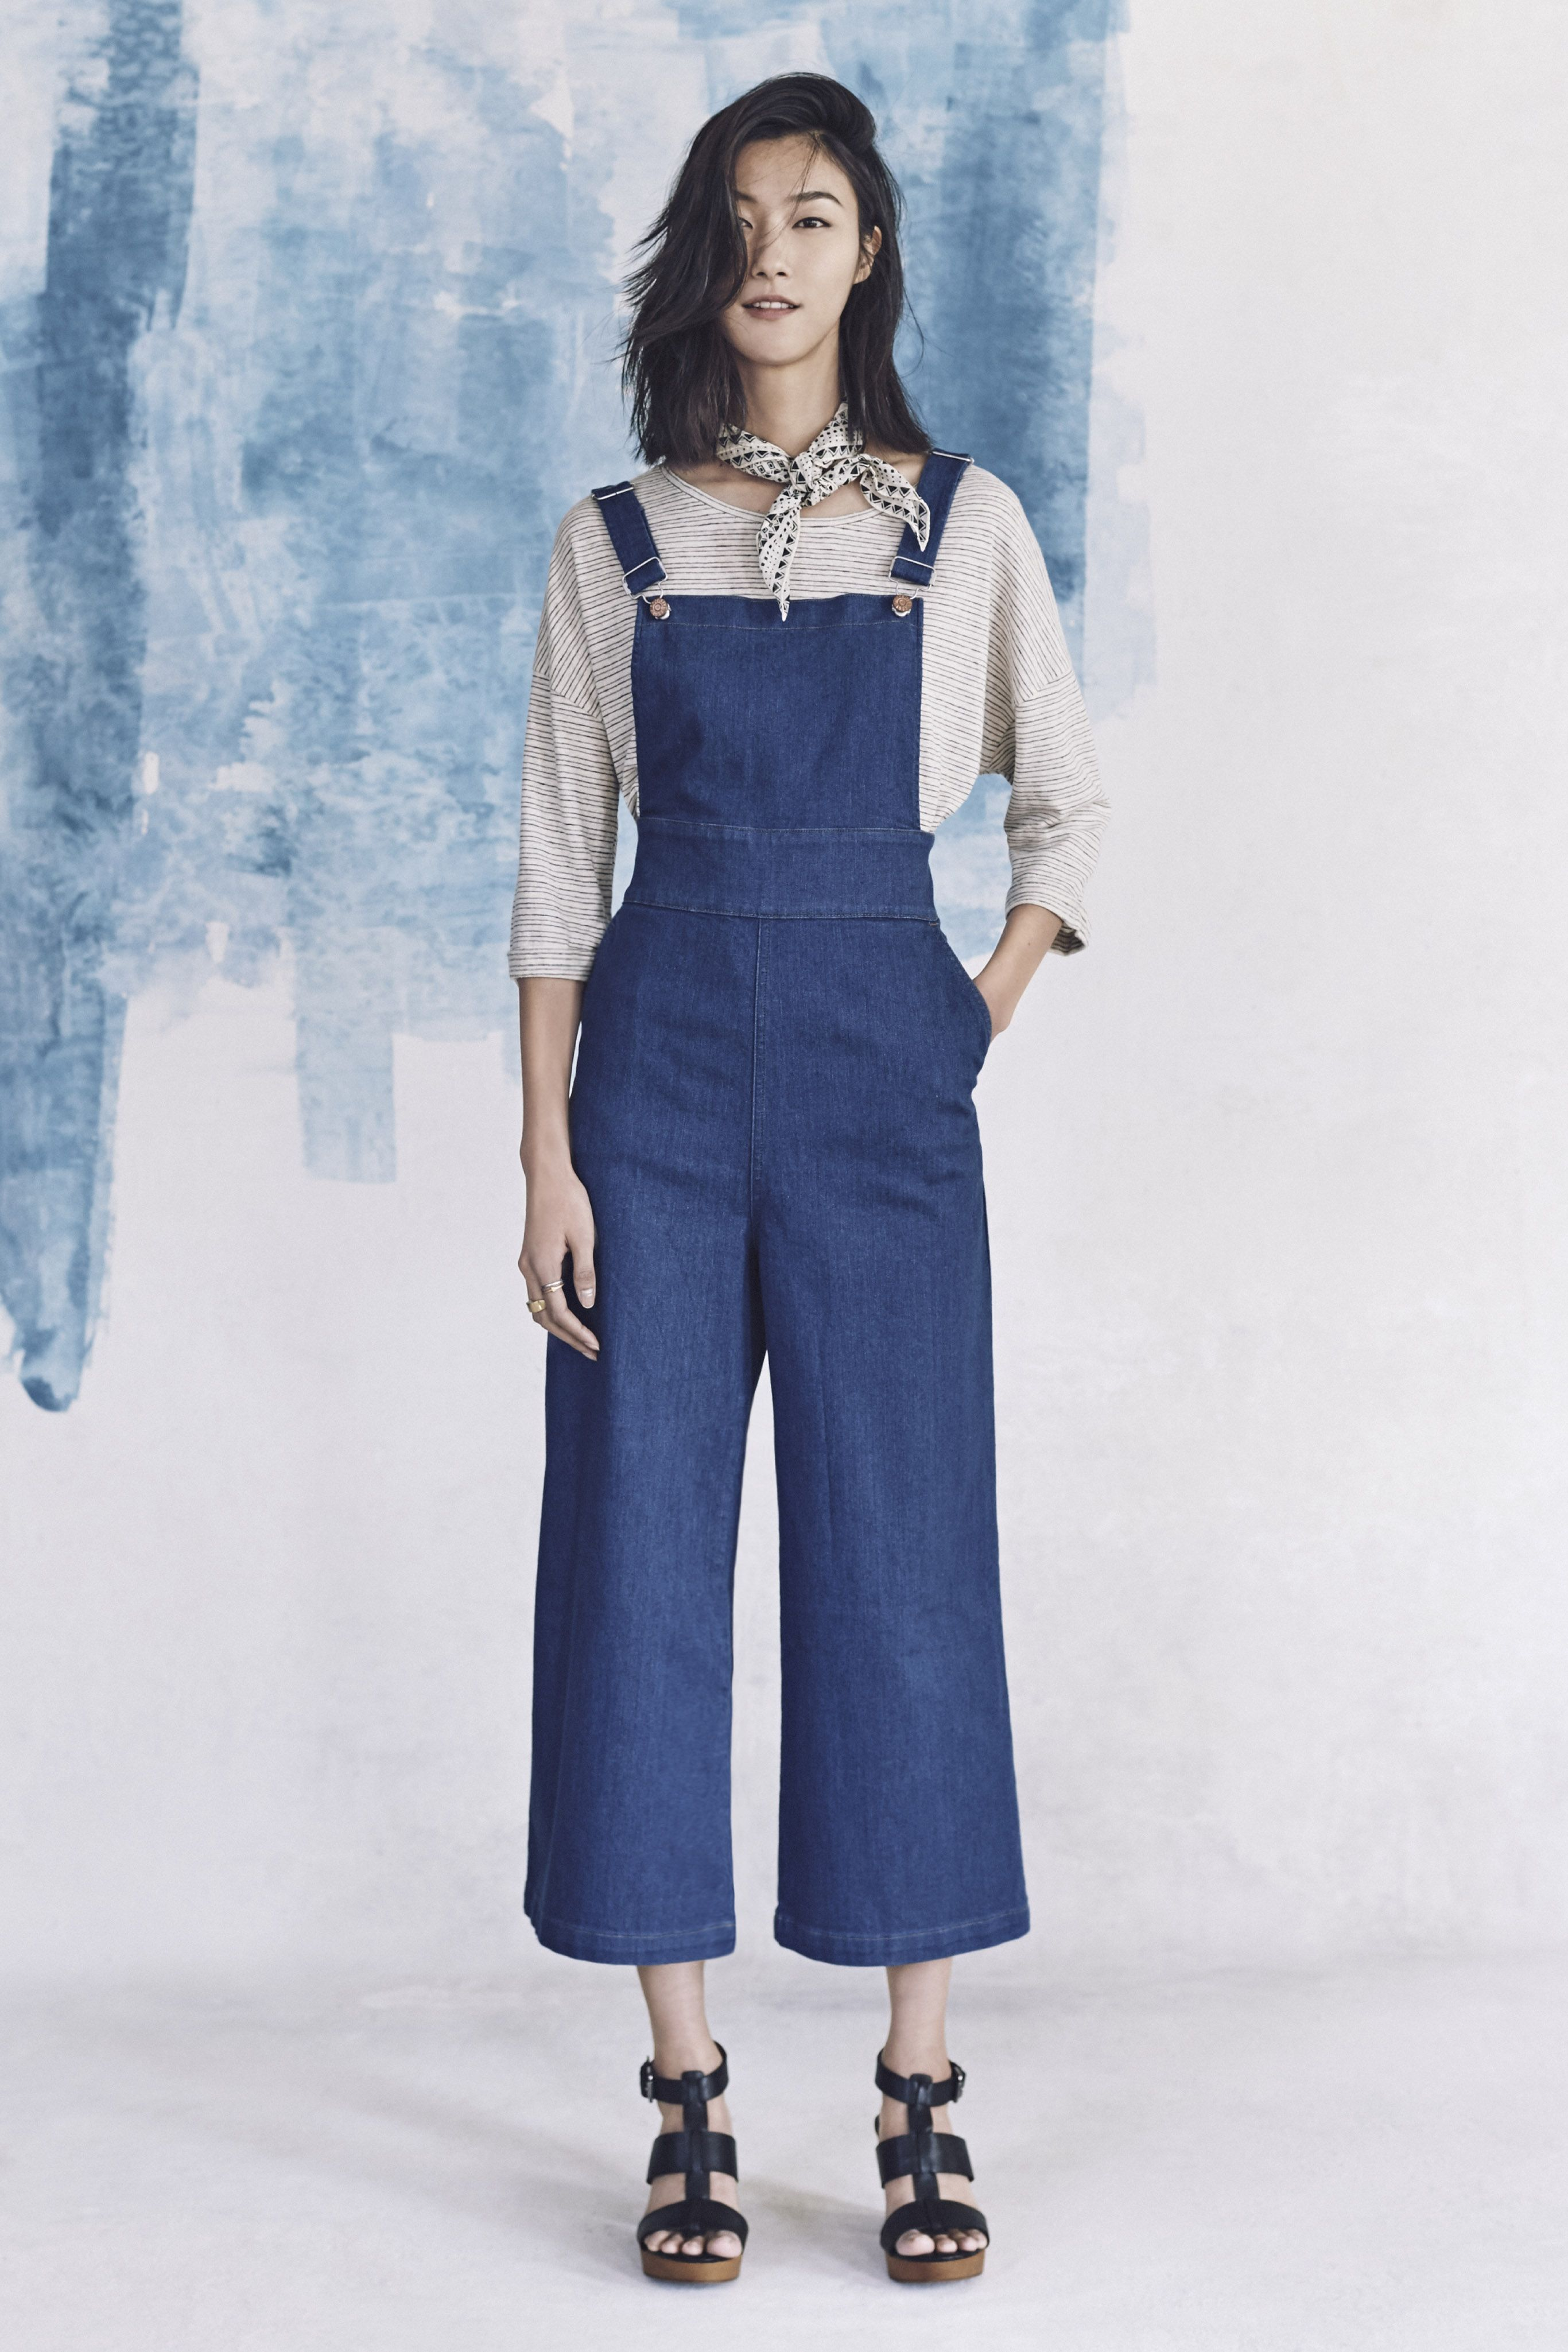 44c68728cce8 your sneak peek at madewell s spring 2016 collection  denim wide leg  cropped overalls